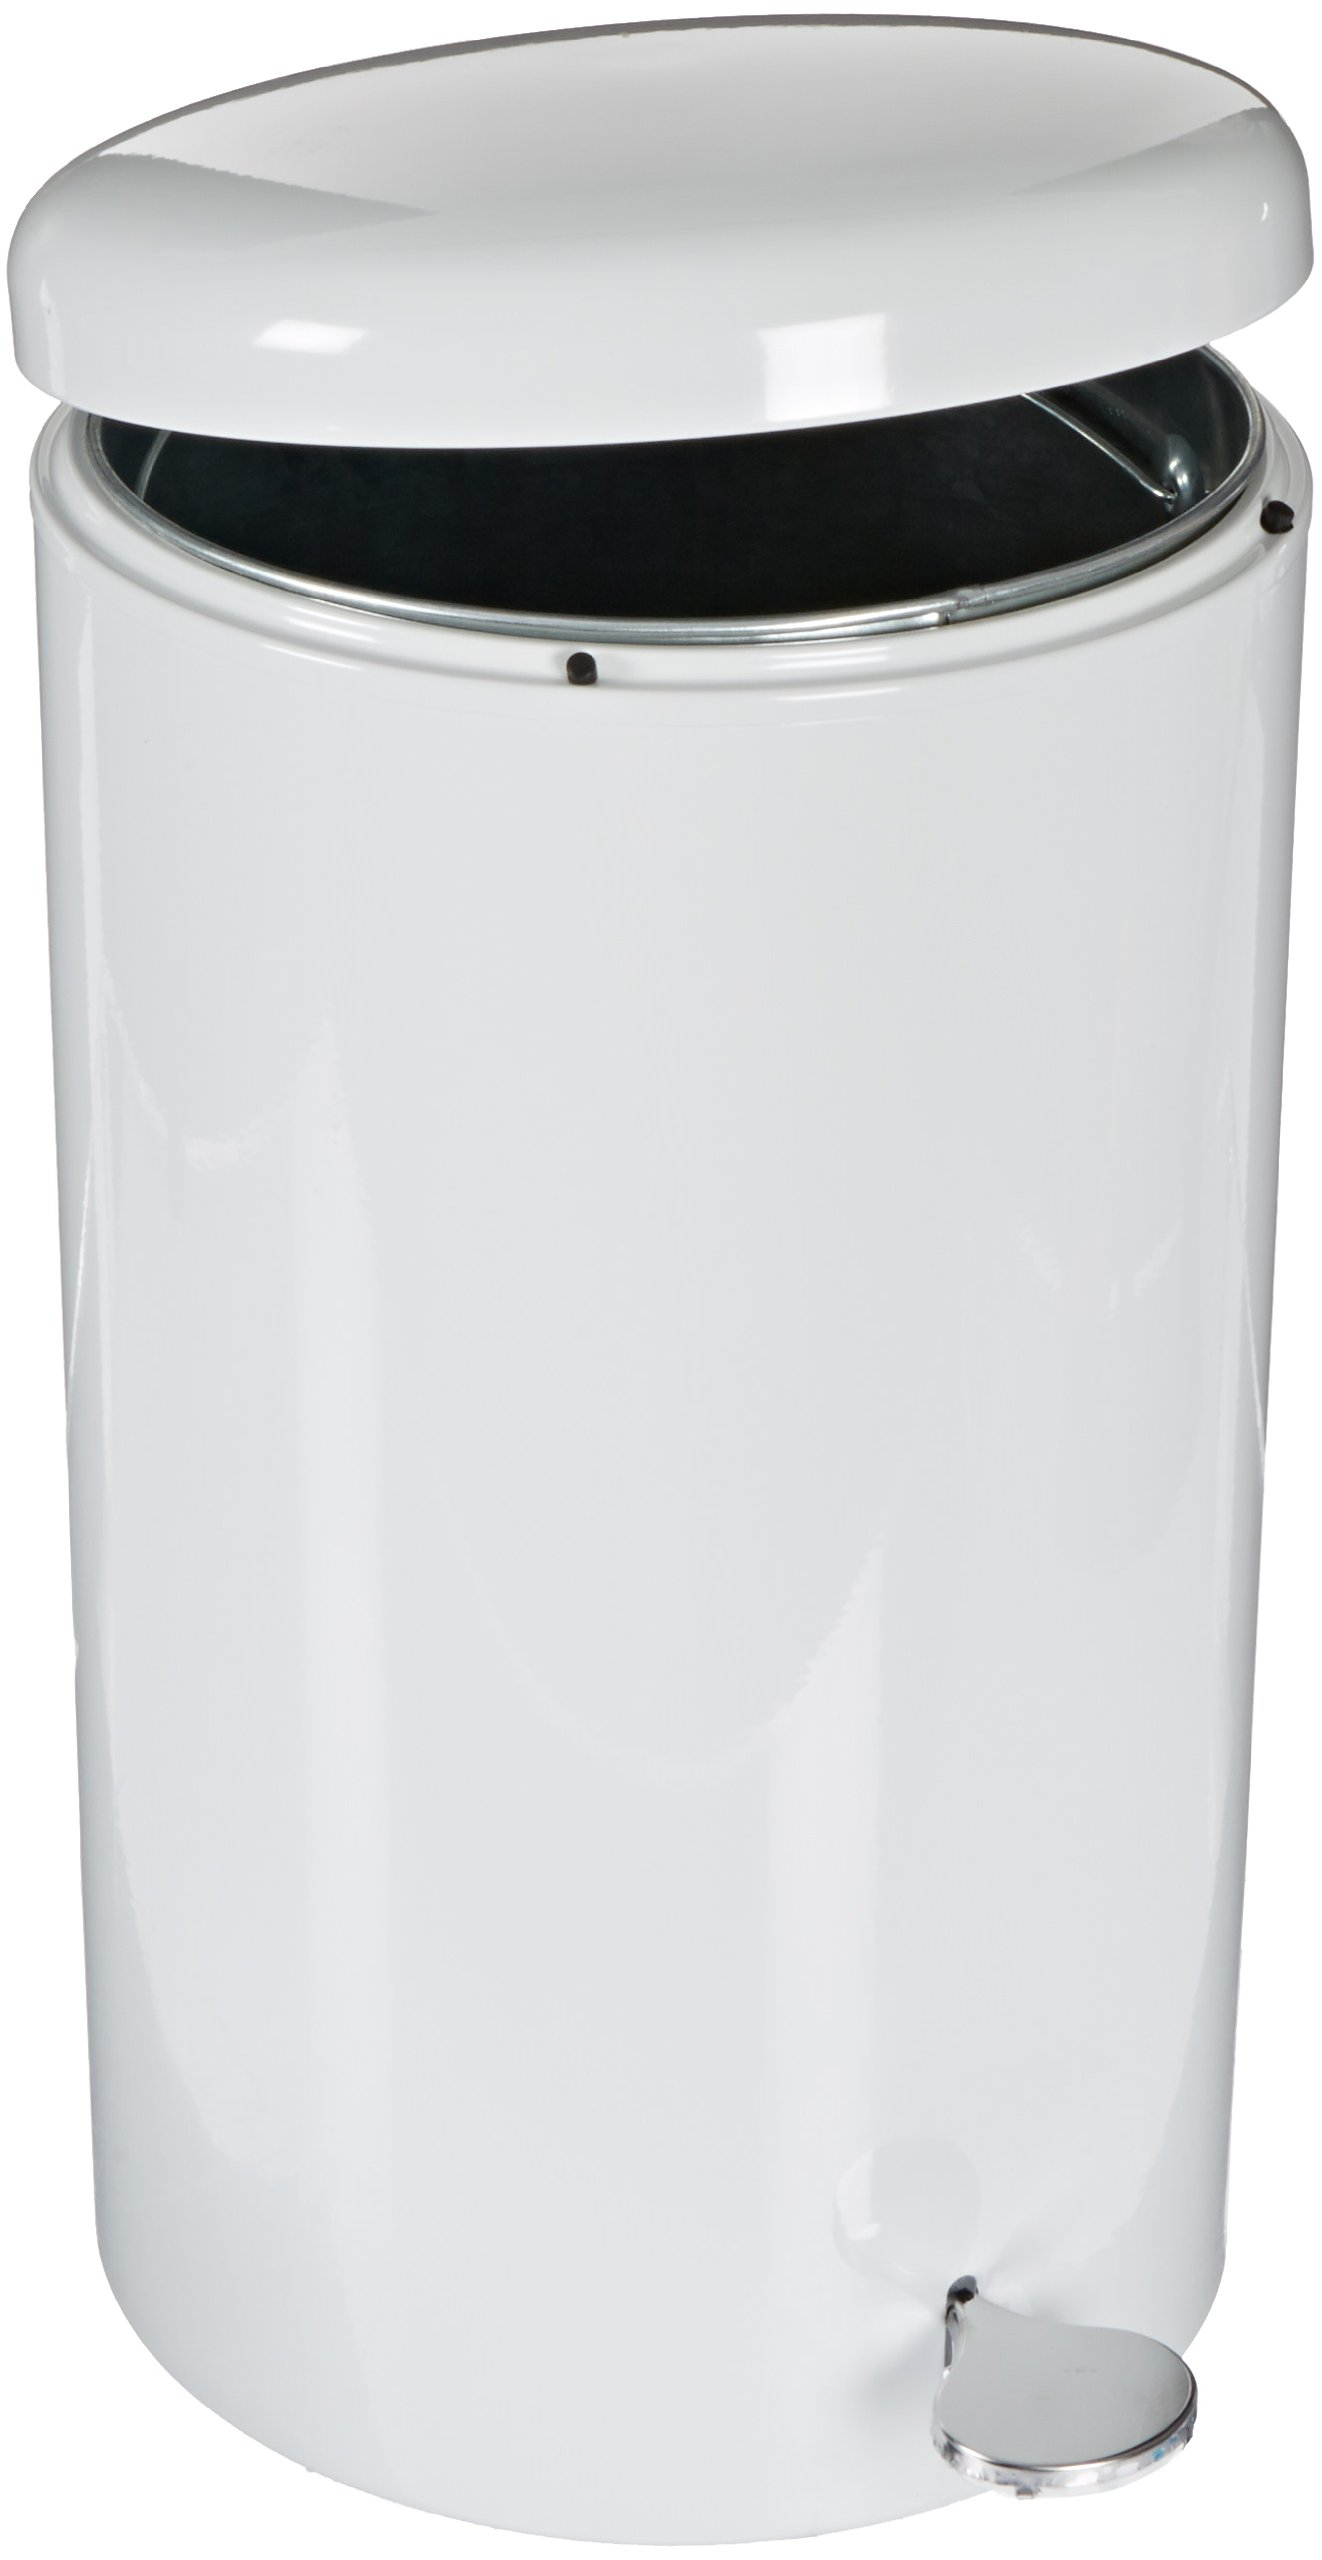 Witt 2270WH Stainless Steel Step On Can Biohazard Waste Container with Galvanized Liner, 7gal Capacity, 11'' Diameter x 21'' Height, White